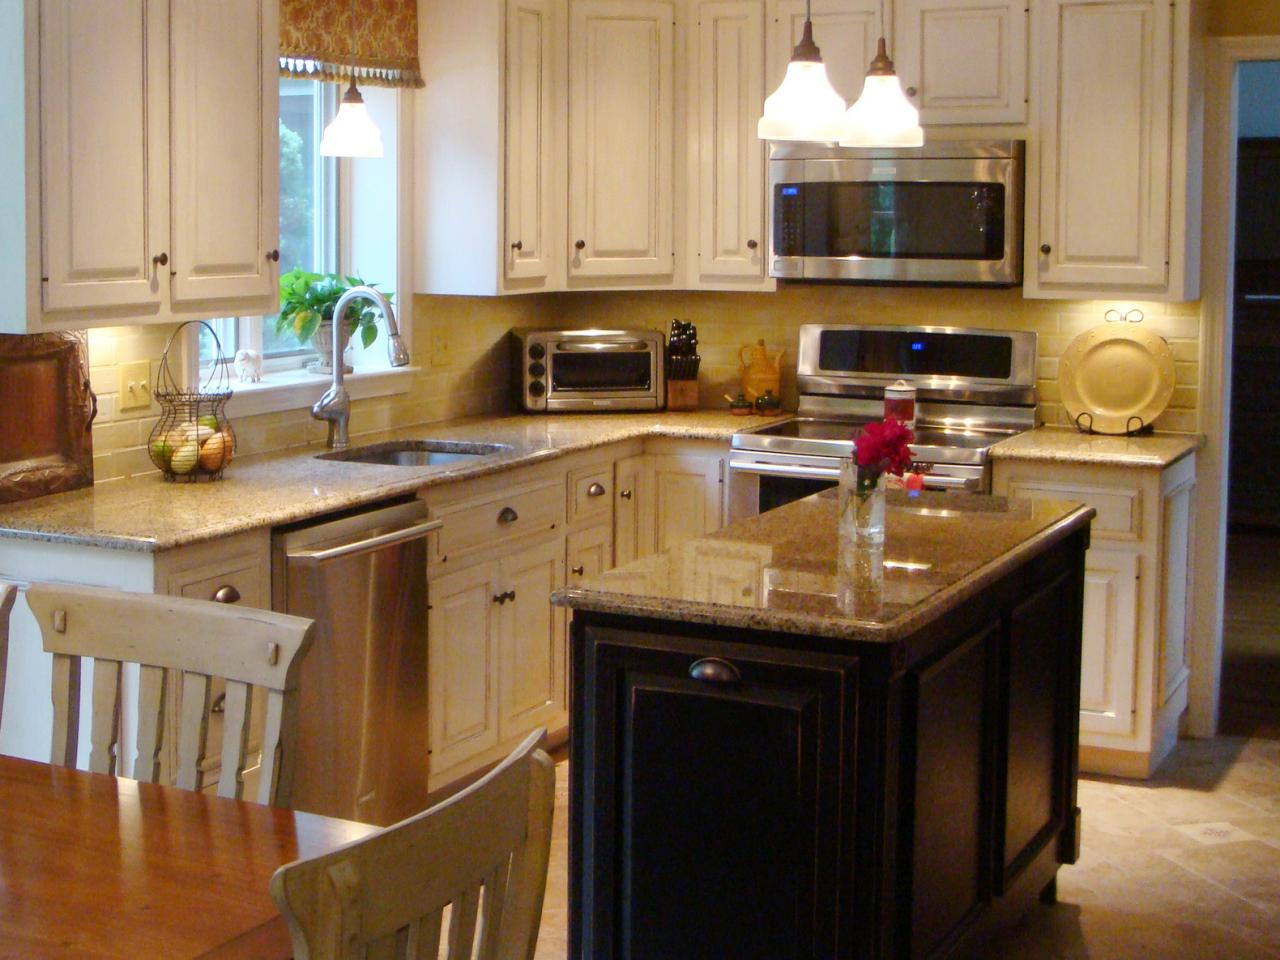 Small kitchen design ideas with island the new kitchen for Small kitchen remodel designs